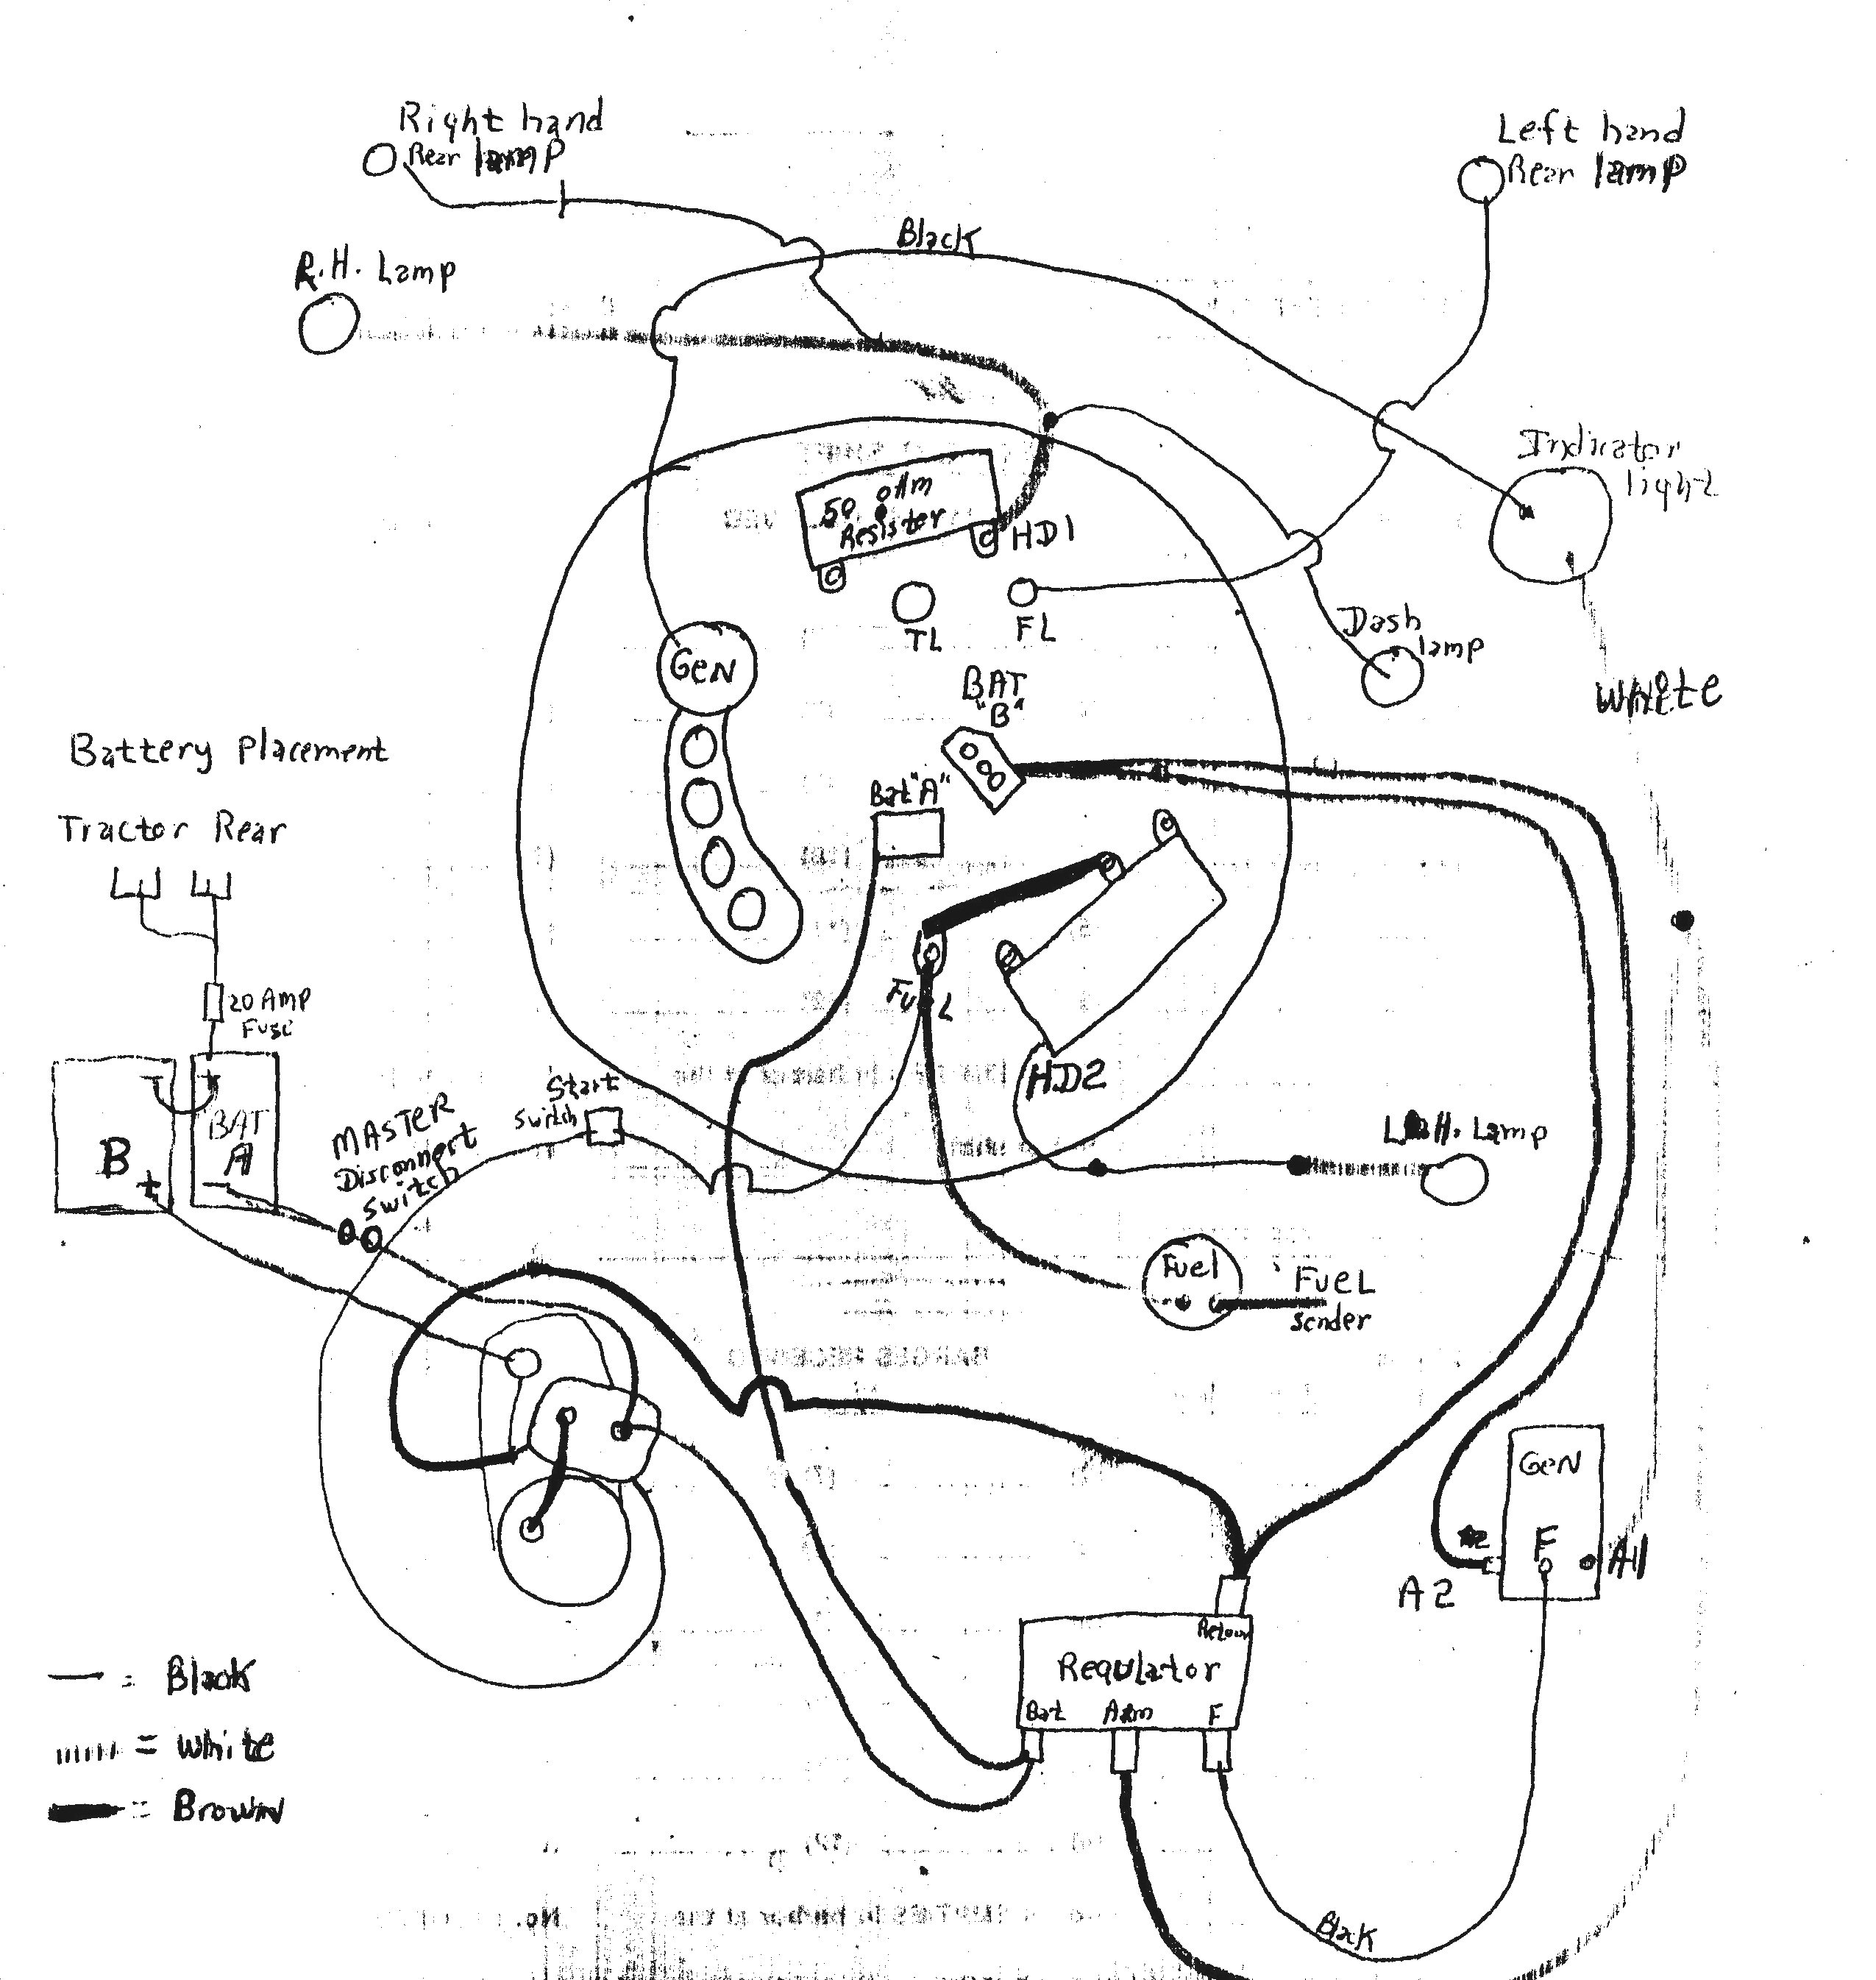 24volt_wiring_diagram the john deere 24 volt electrical system explained John Deere 2010 Parts Diagram at nearapp.co